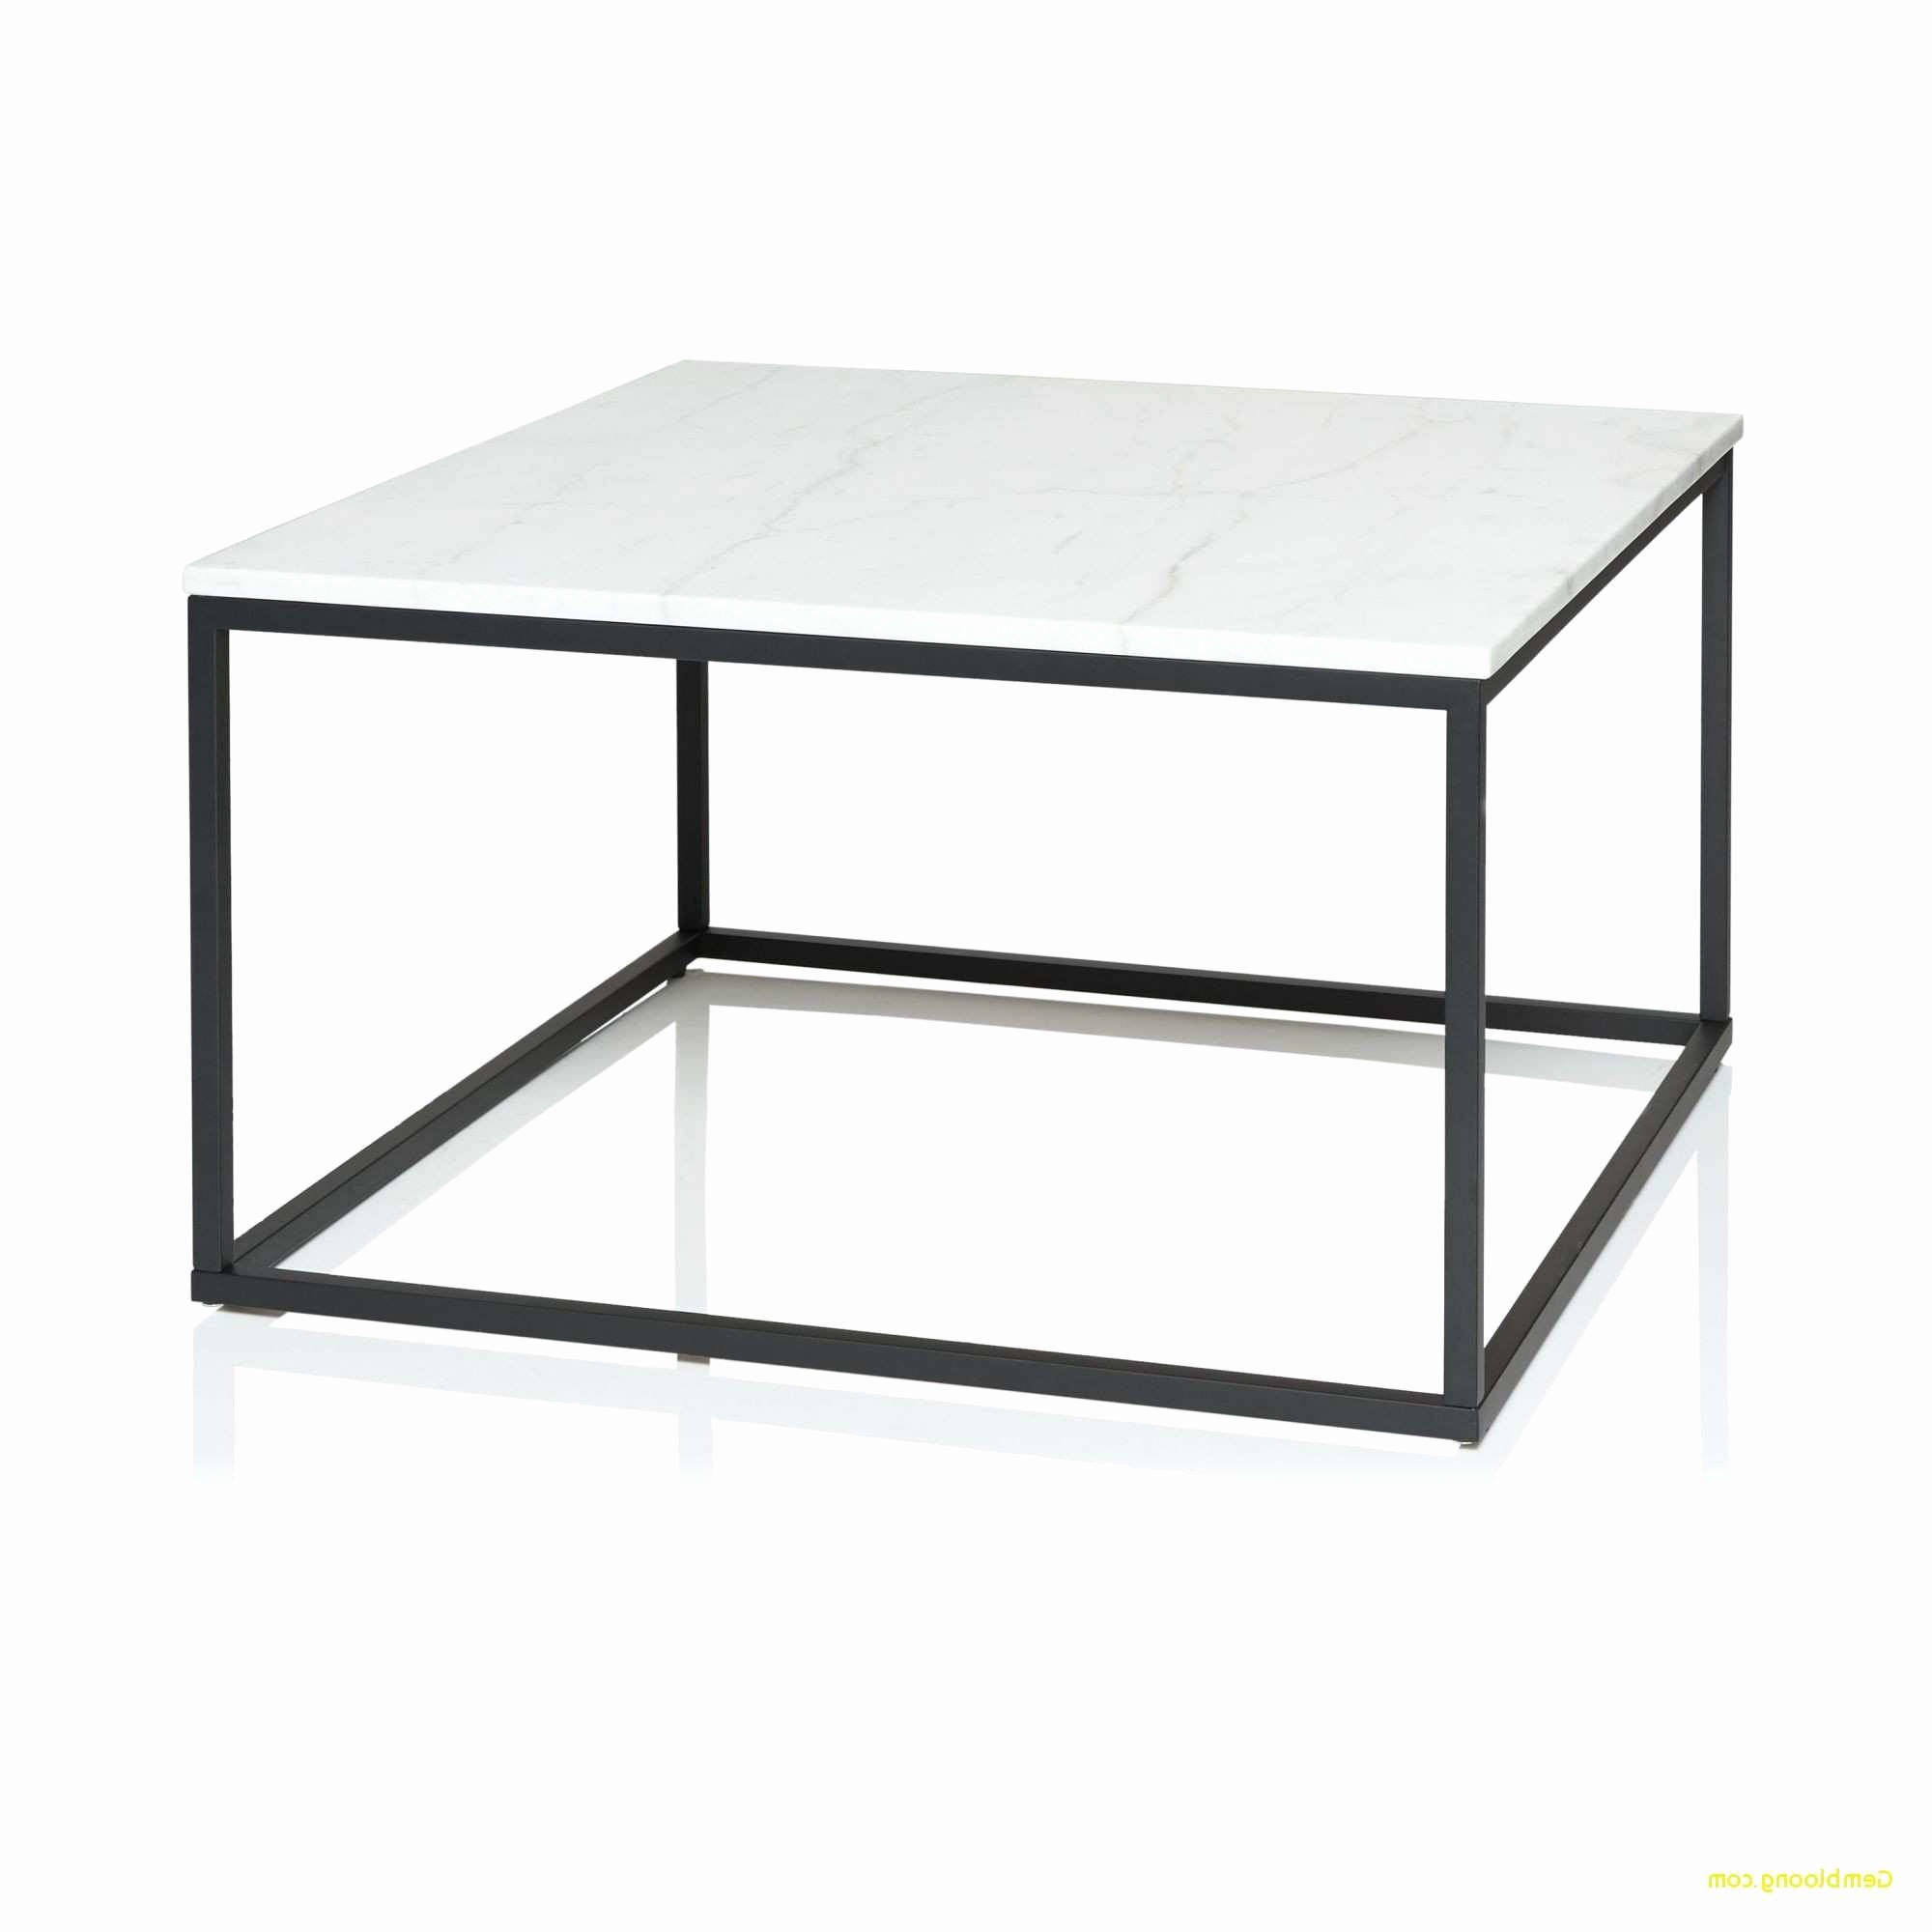 Well Liked Peekaboo Acrylic Tall Coffee Tables Pertaining To Peekaboo Acrylic Coffee Table Lovely 21 Magnificent Marble Top Table (Gallery 6 of 20)